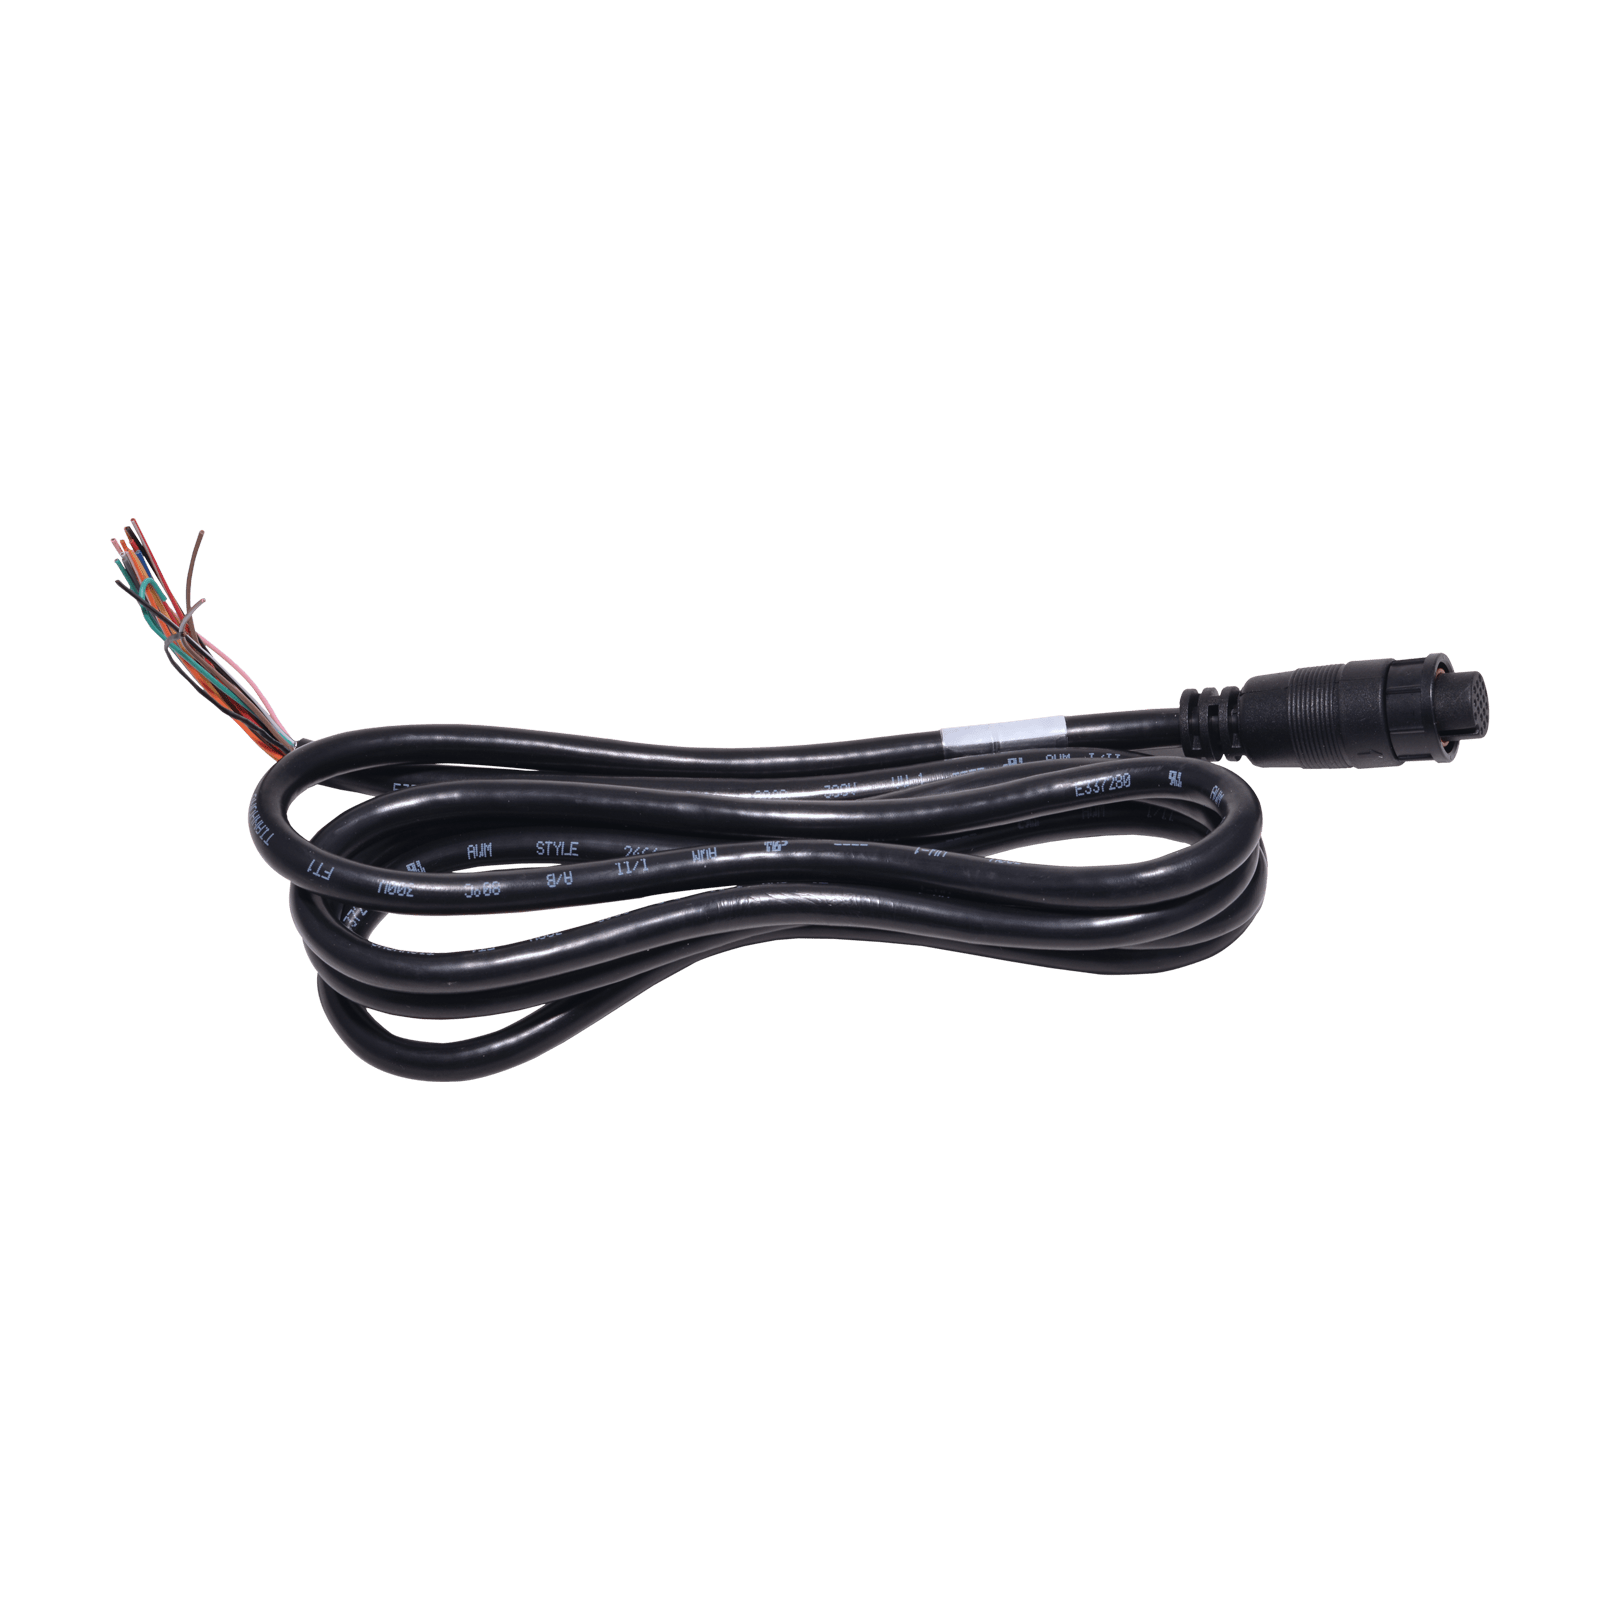 14 WAY DATA CABLE